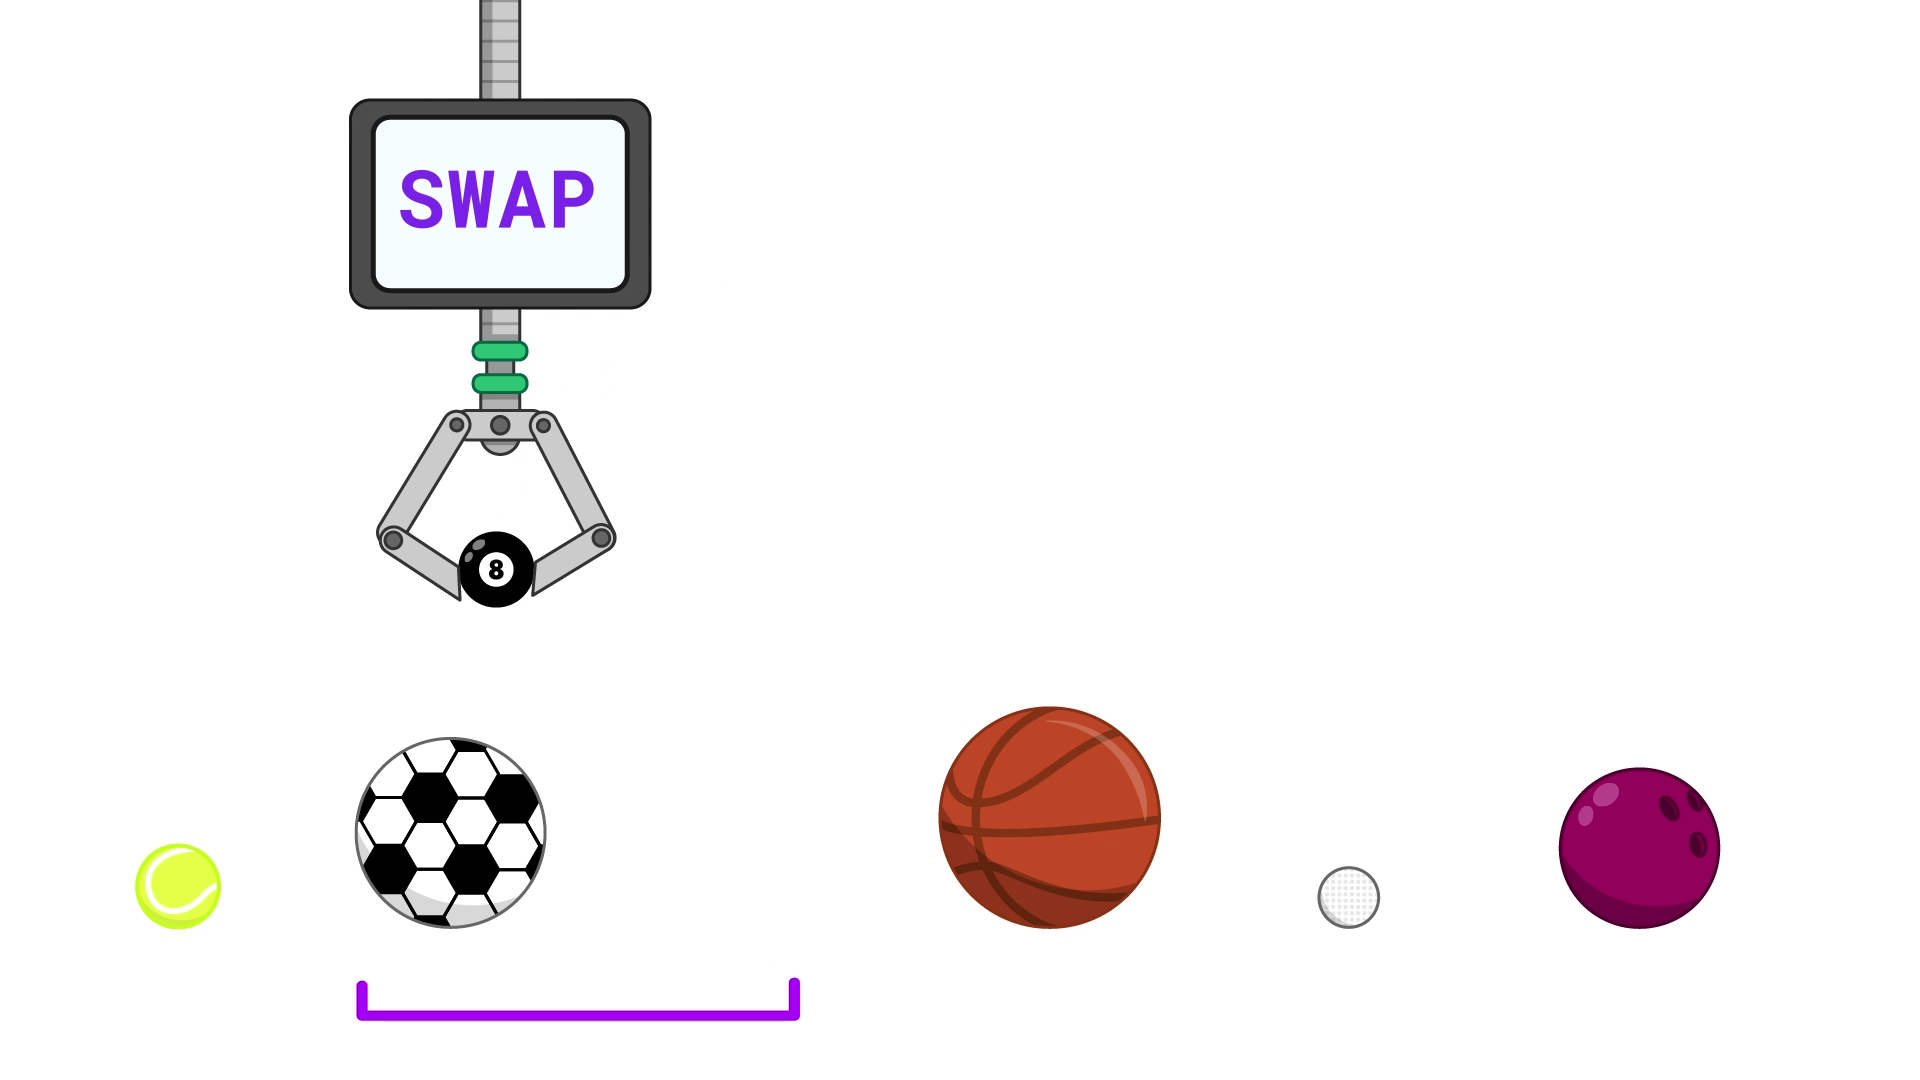 "A line of five balls with a gap after the second one. To the left of the gap are a tennis ball and a soccer ball. A robotic claw has picked up a pool ball from the third position in the line and is moving it to where the soccer ball is in the line. After the gap are a basketball, a golf ball and a bowling ball. A screen on the claw reads ""SWAP"" and a purple bracket underneath the balls highlights the second and third positions in the line (the soccer ball and the gap)."